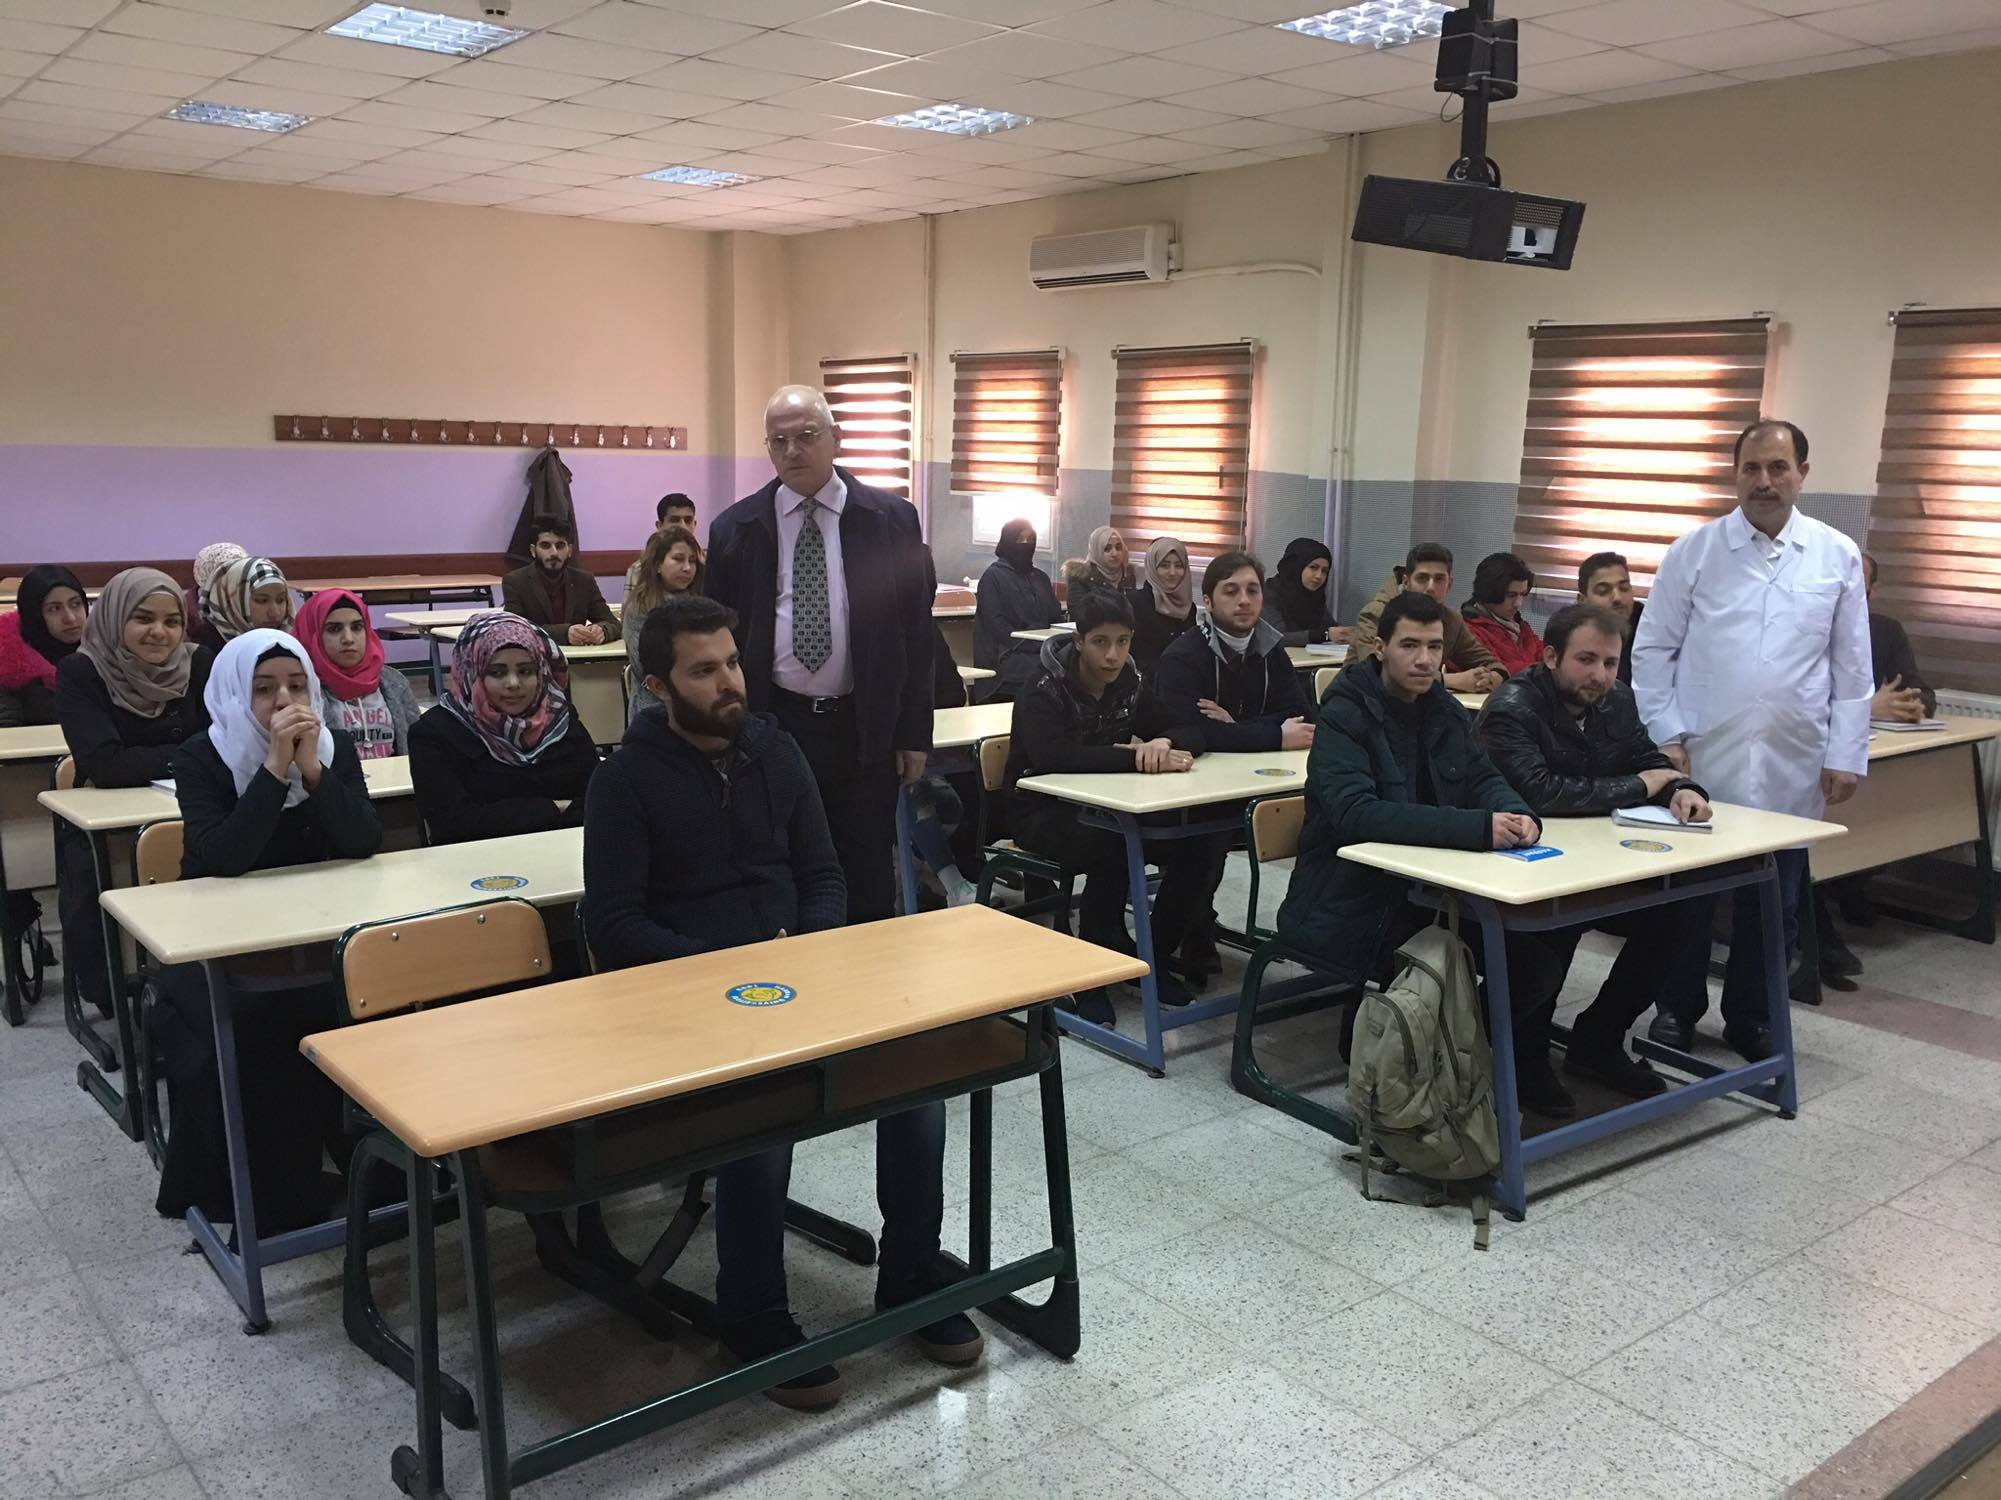 Hiring teachers who speak Arabic makes it possible for Syrian refugee students to proceed their study. Photos credit: Mehmet Guli Aslan